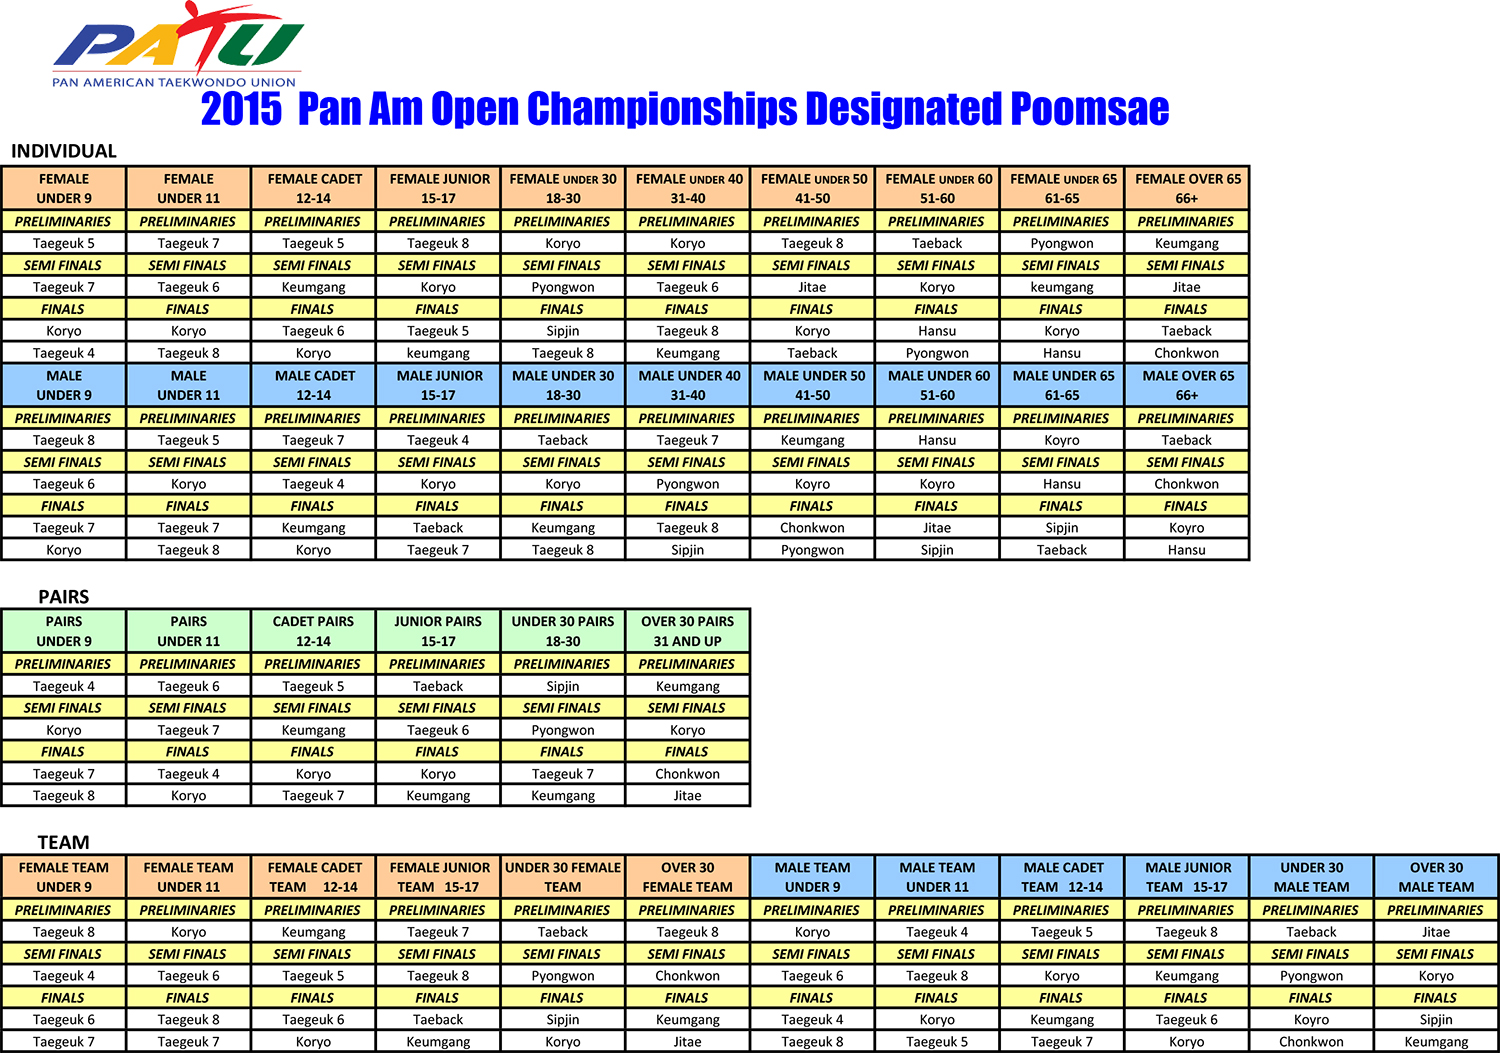 Pan-Am-Open---New-poomsae